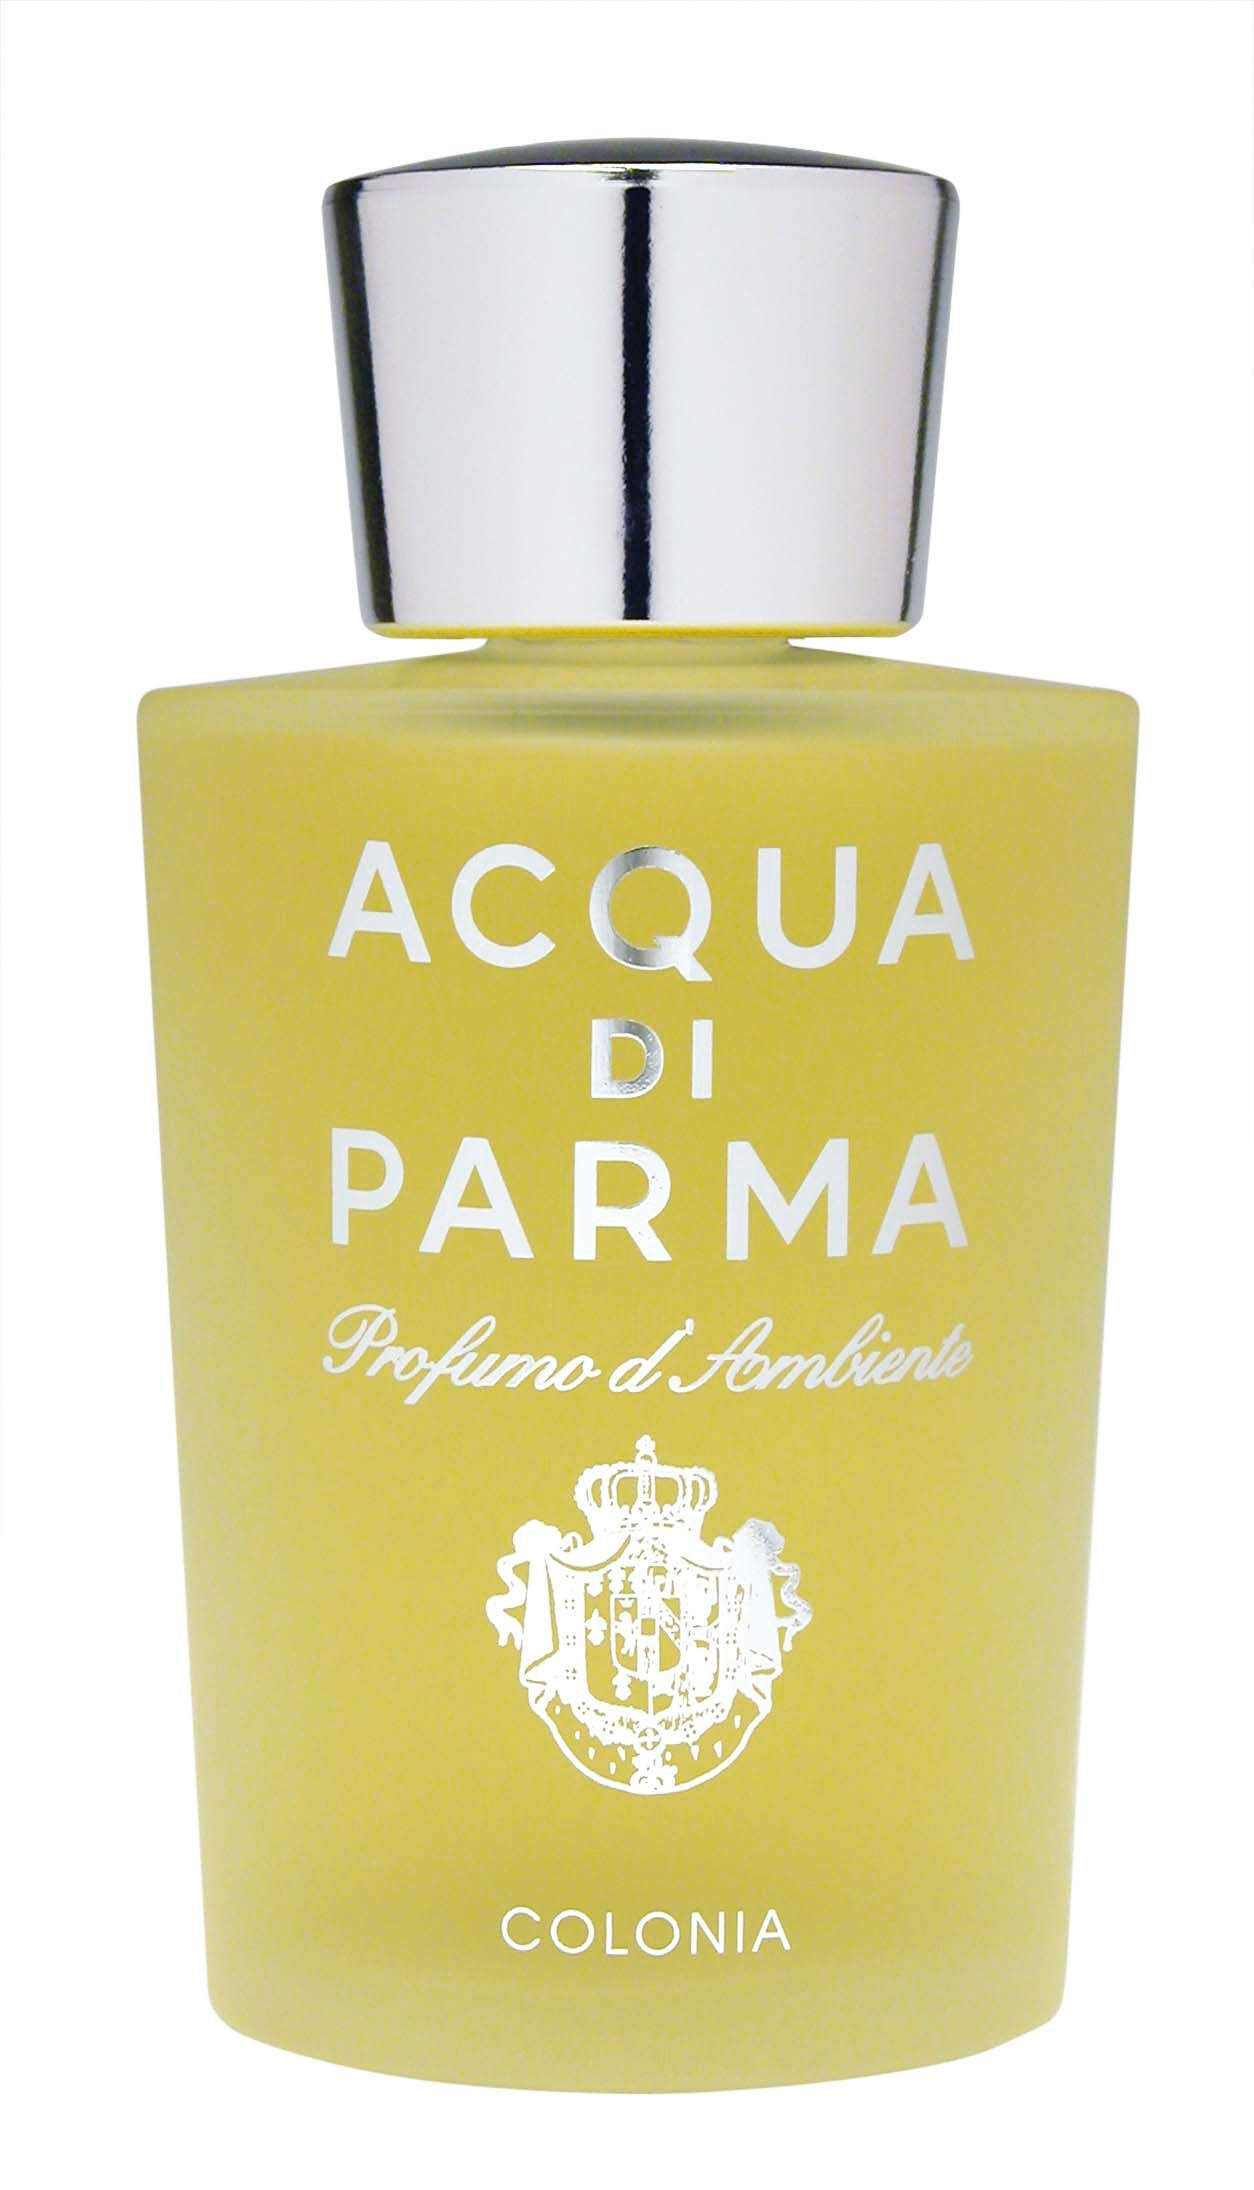 Acqua Di Parma Colonia Accord room fragrance